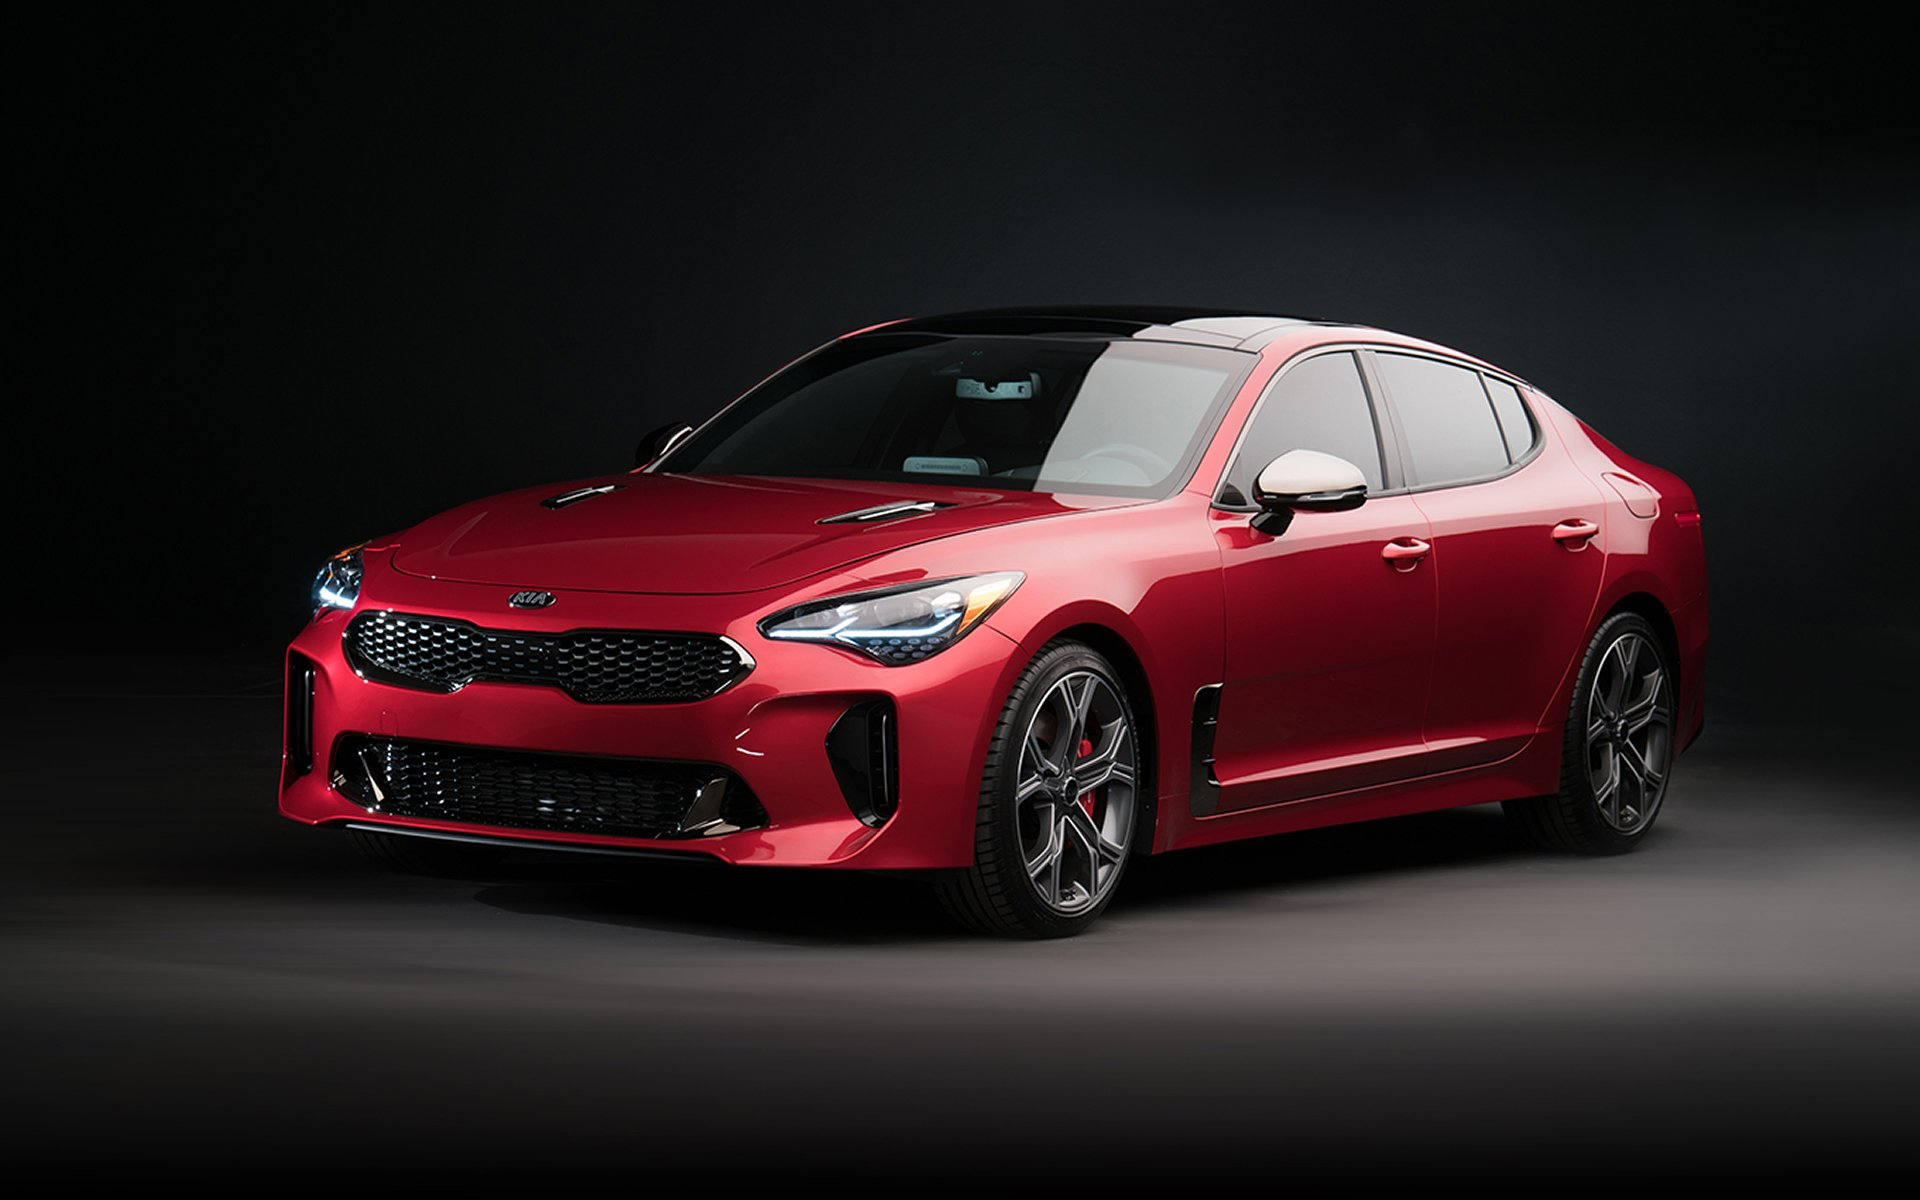 2018 Kia Stinger Preview in Shreveport, LA